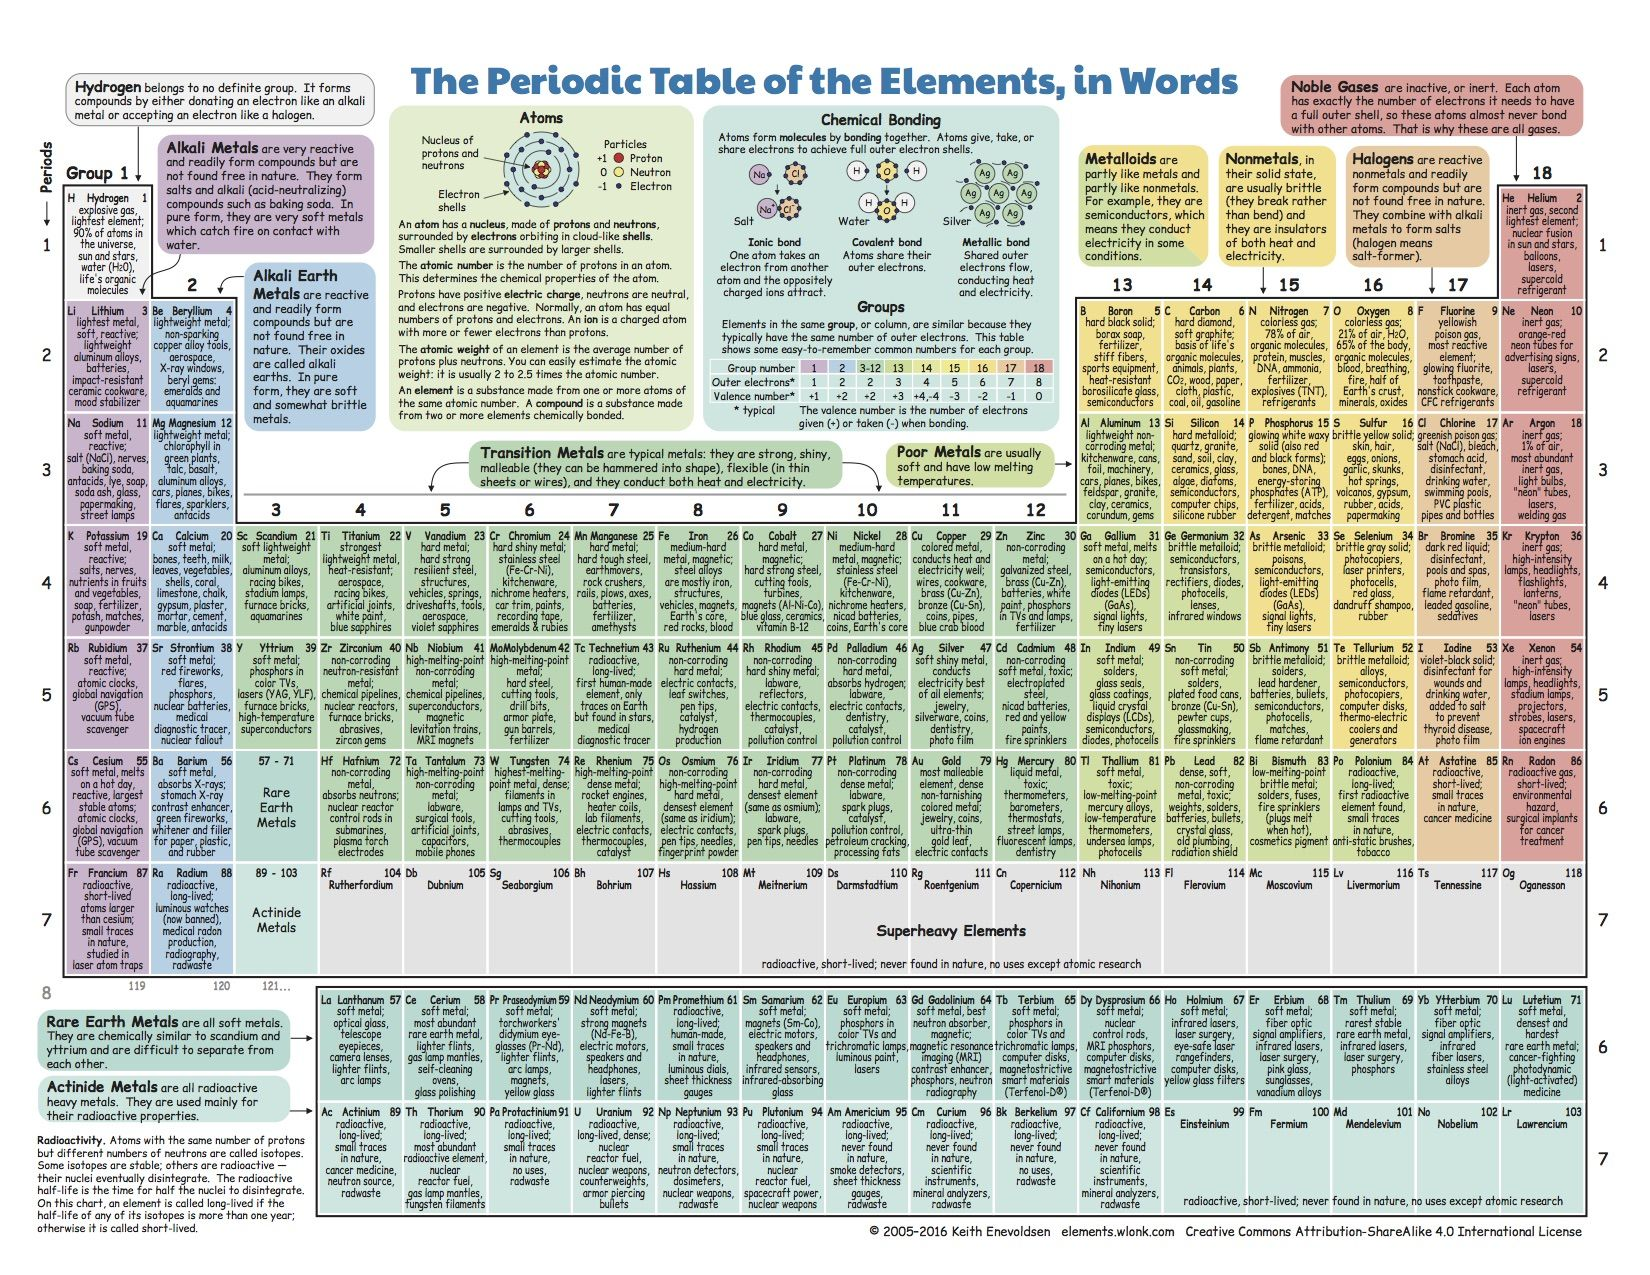 What Do We Do With All The Chemical Elements This